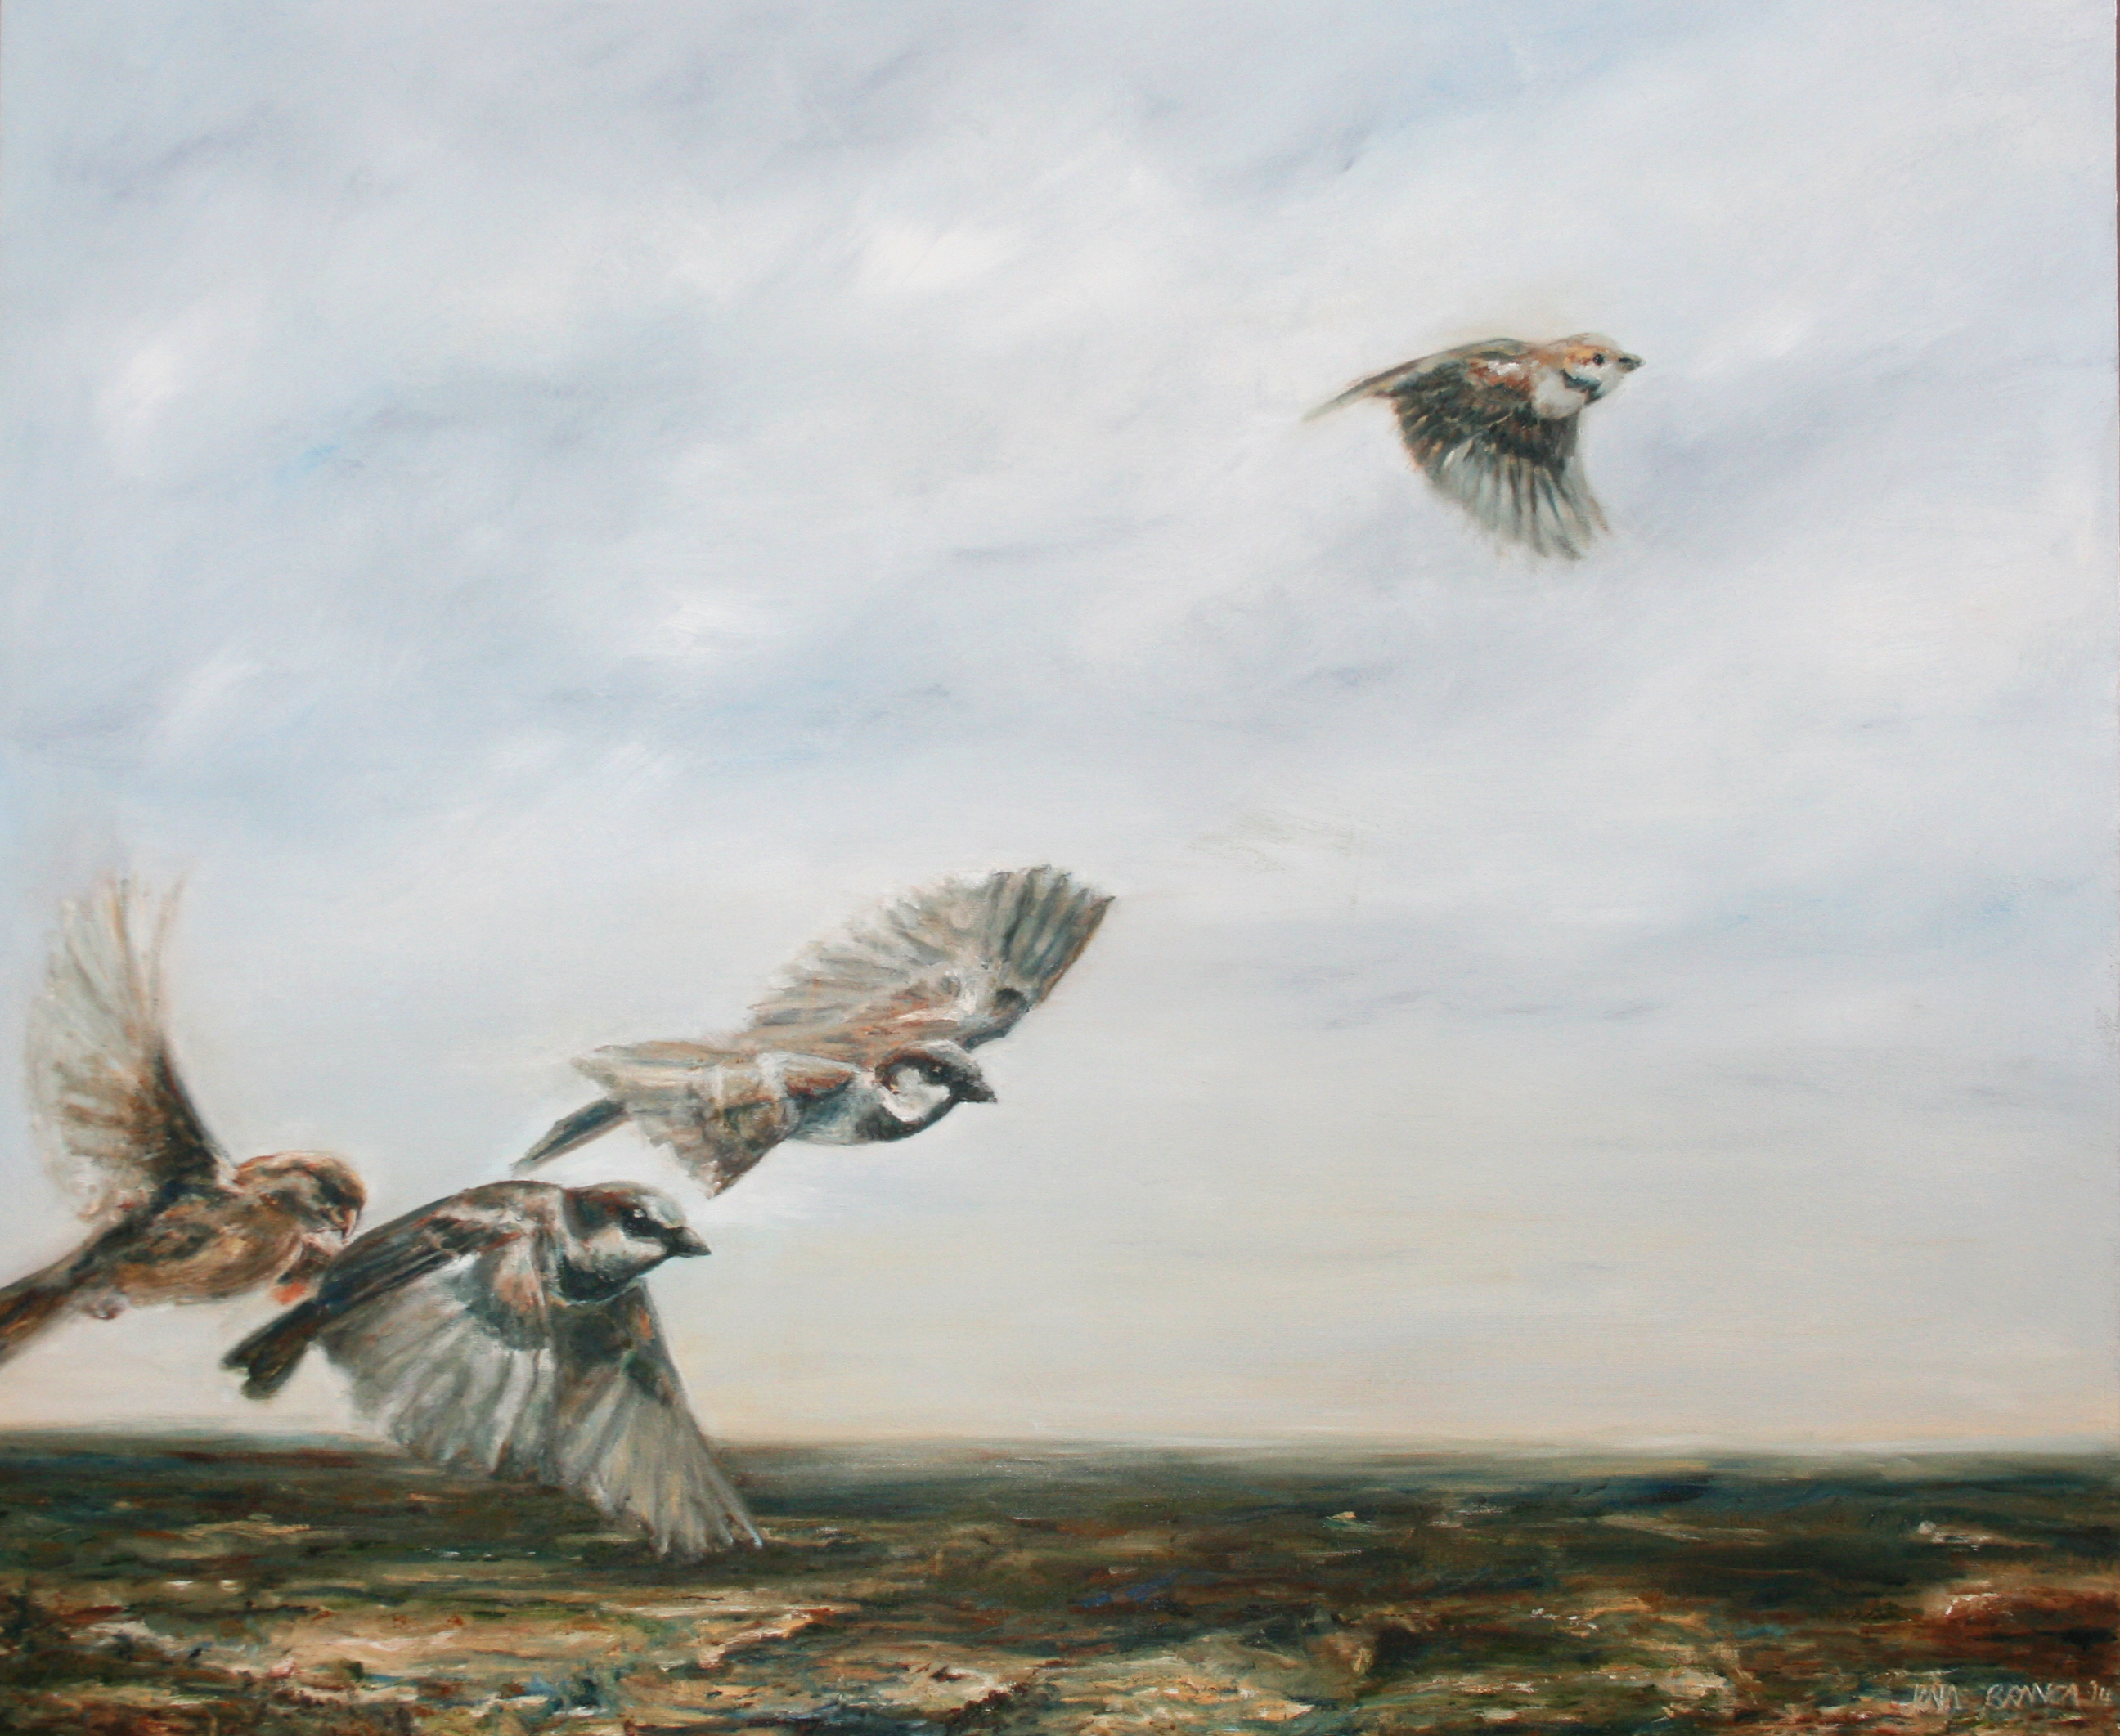 Sparrows in flight 2